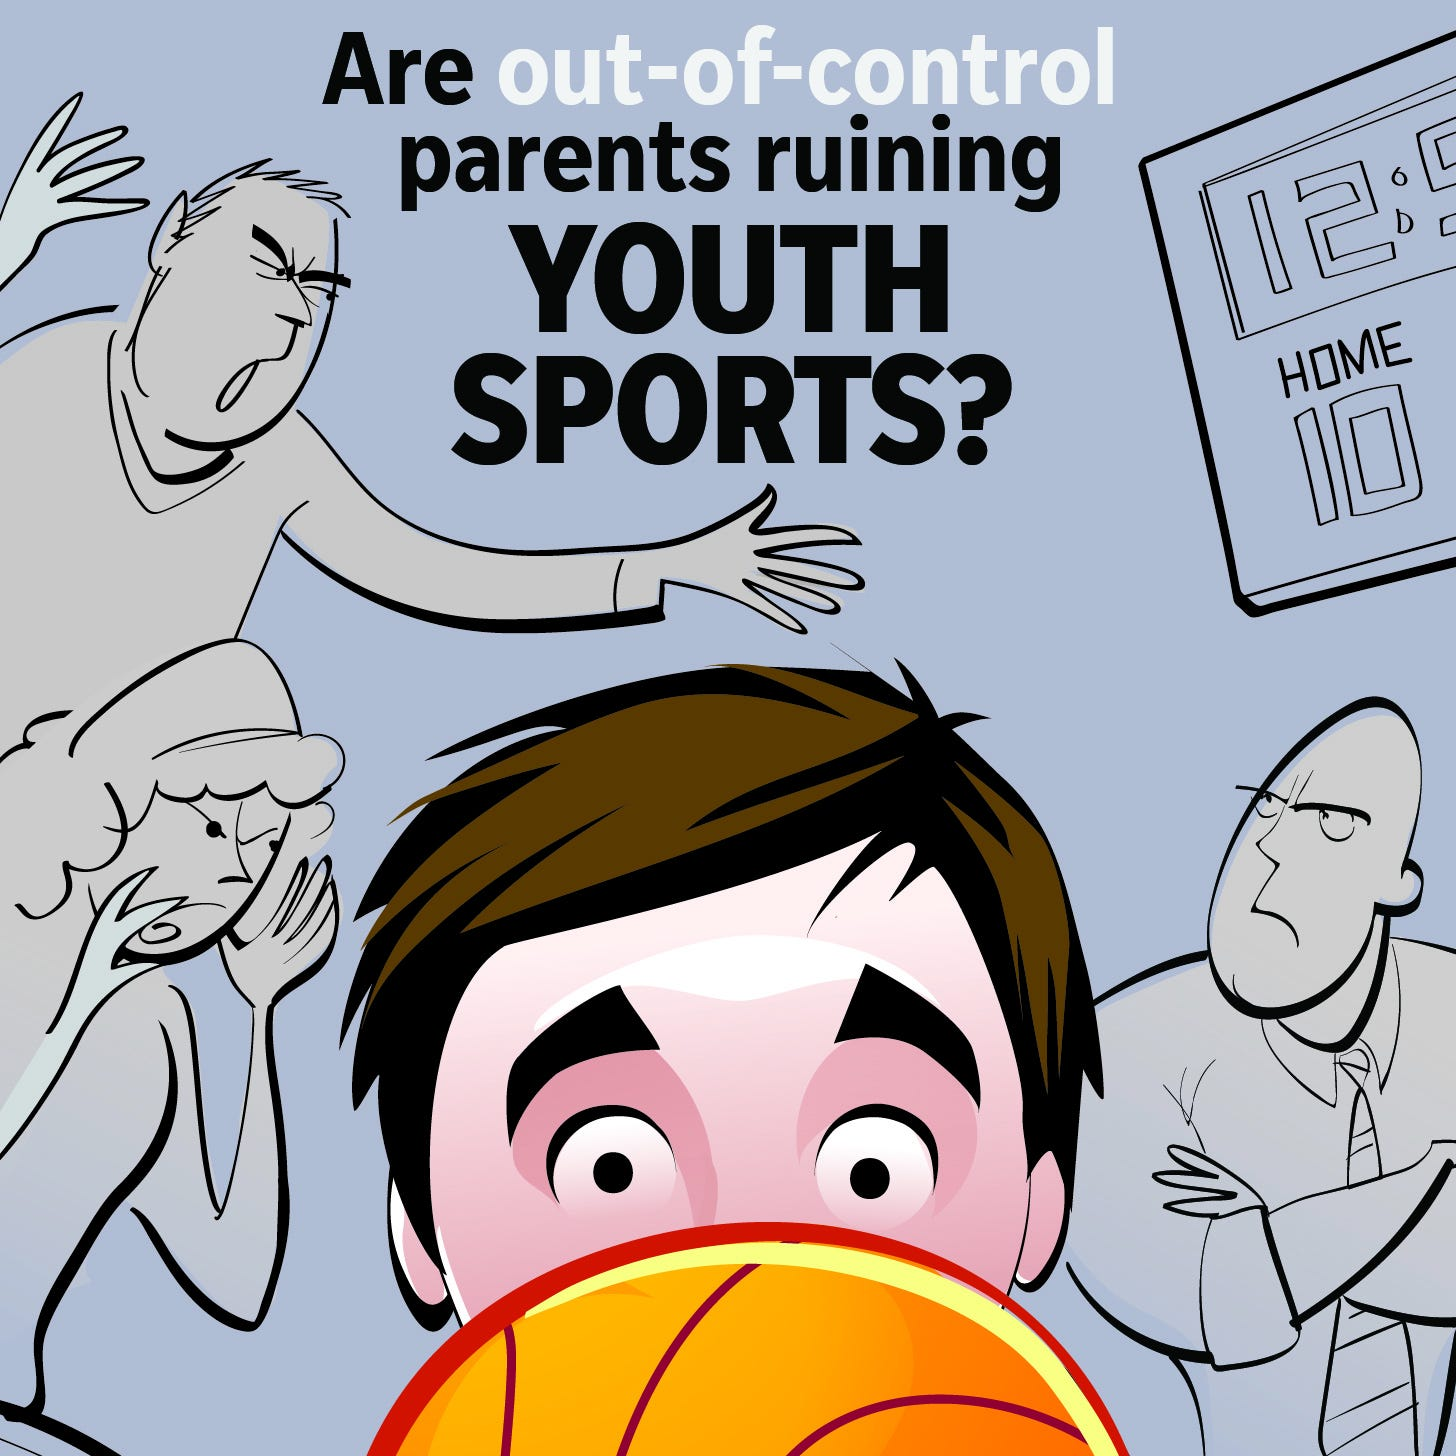 Are out-of-control parents ruining youth sports?